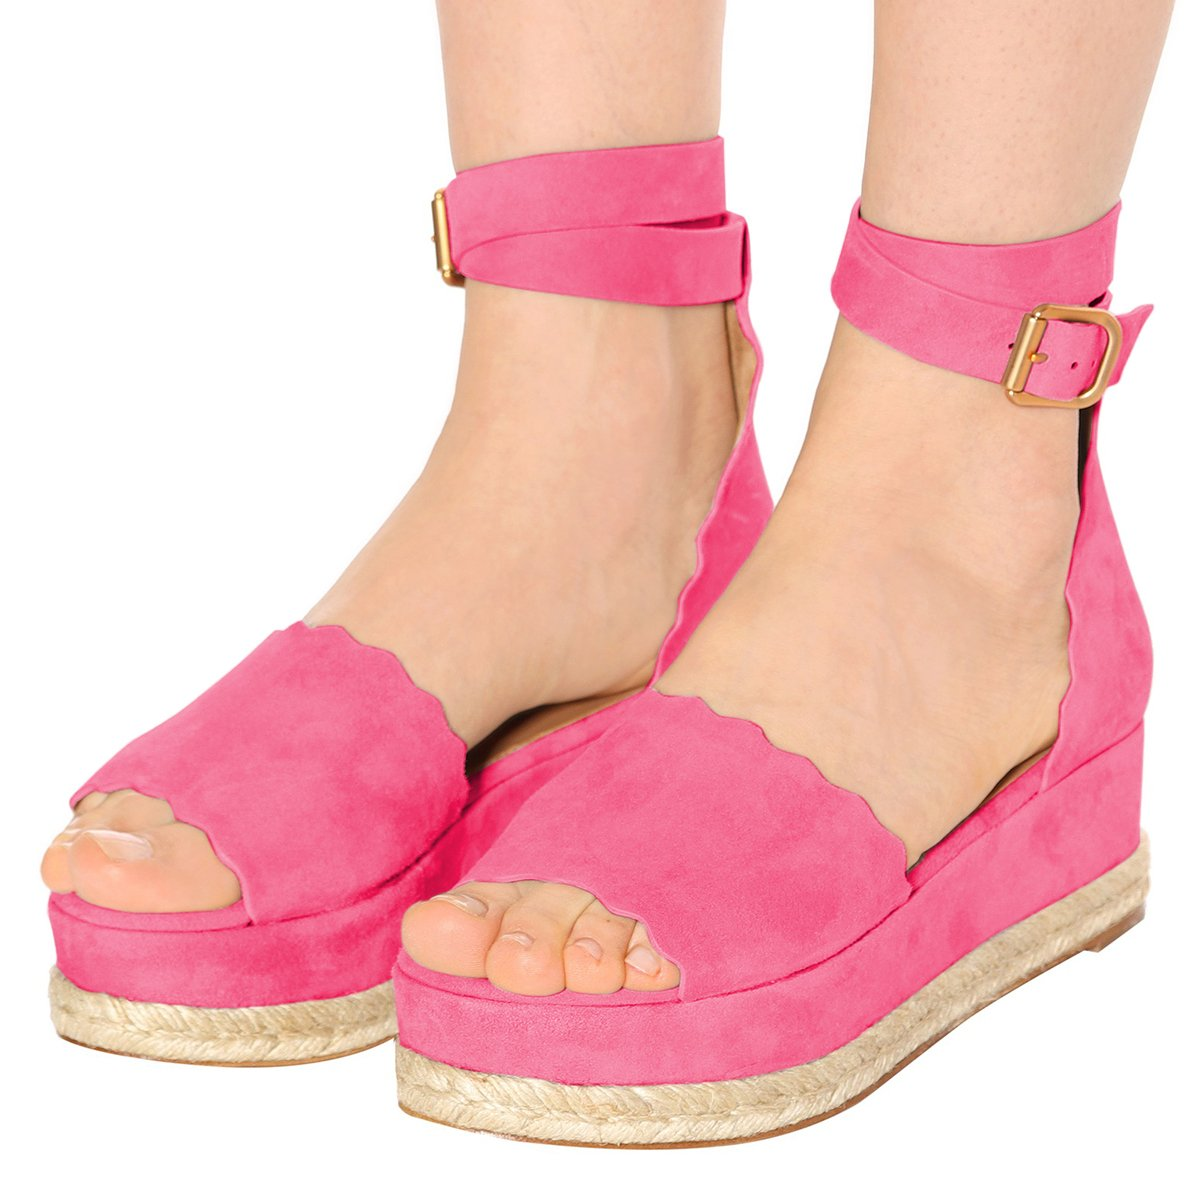 YDN Women Espadrille Peep Toe Ankle Straps Wedge Sandals Low Heels Platform Shoes with Buckle B07DCNG86T 8.5 M US|Rossy